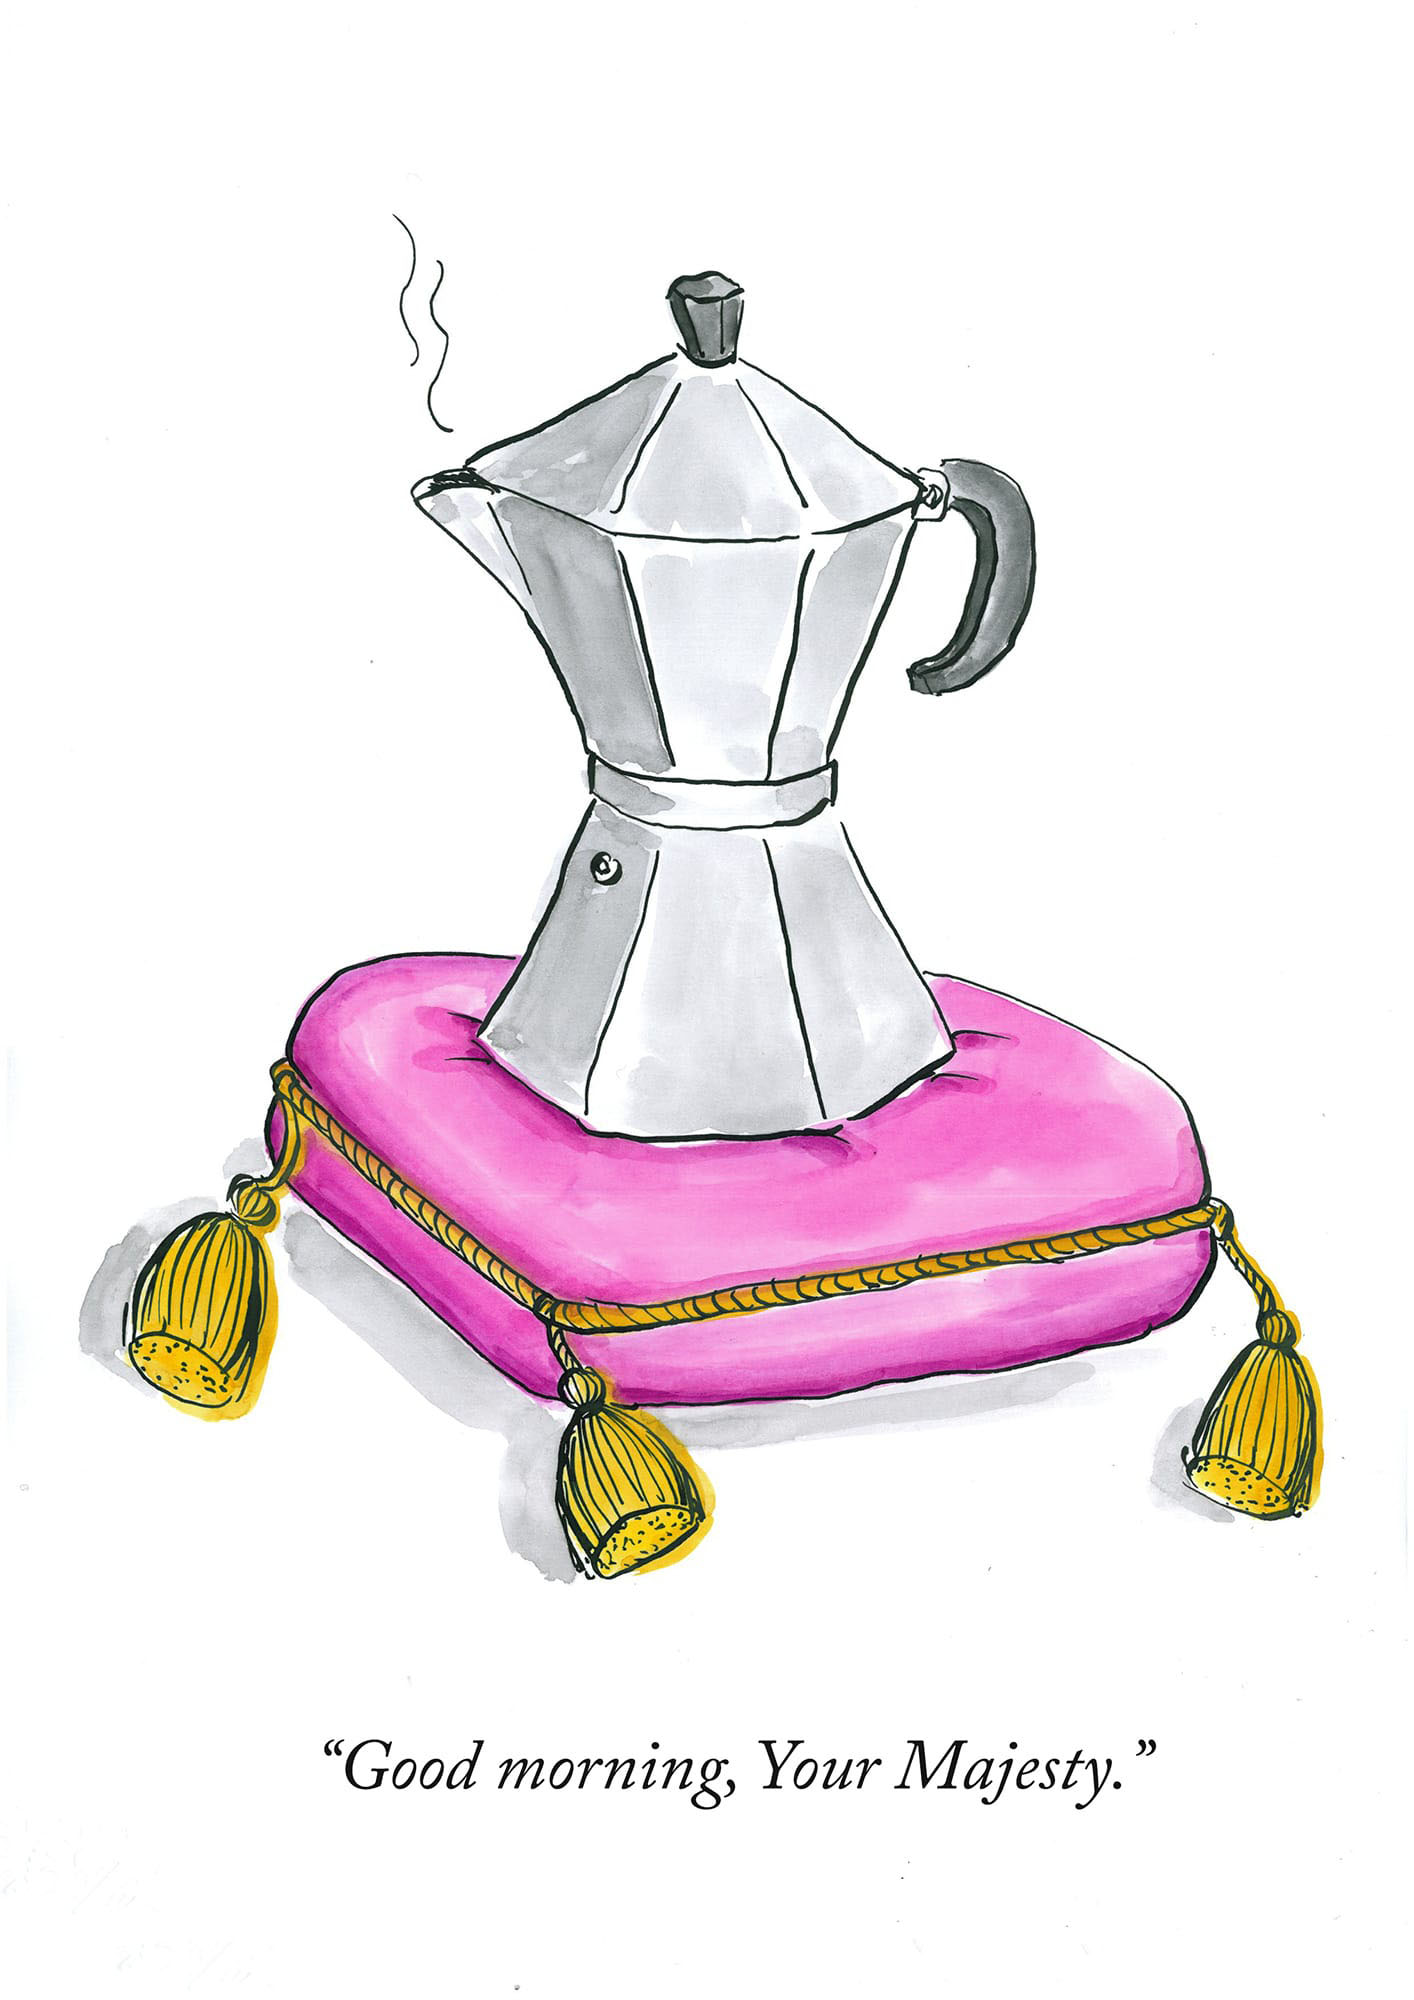 Royal Bialetti coffee maker | © Sarah Morrissette